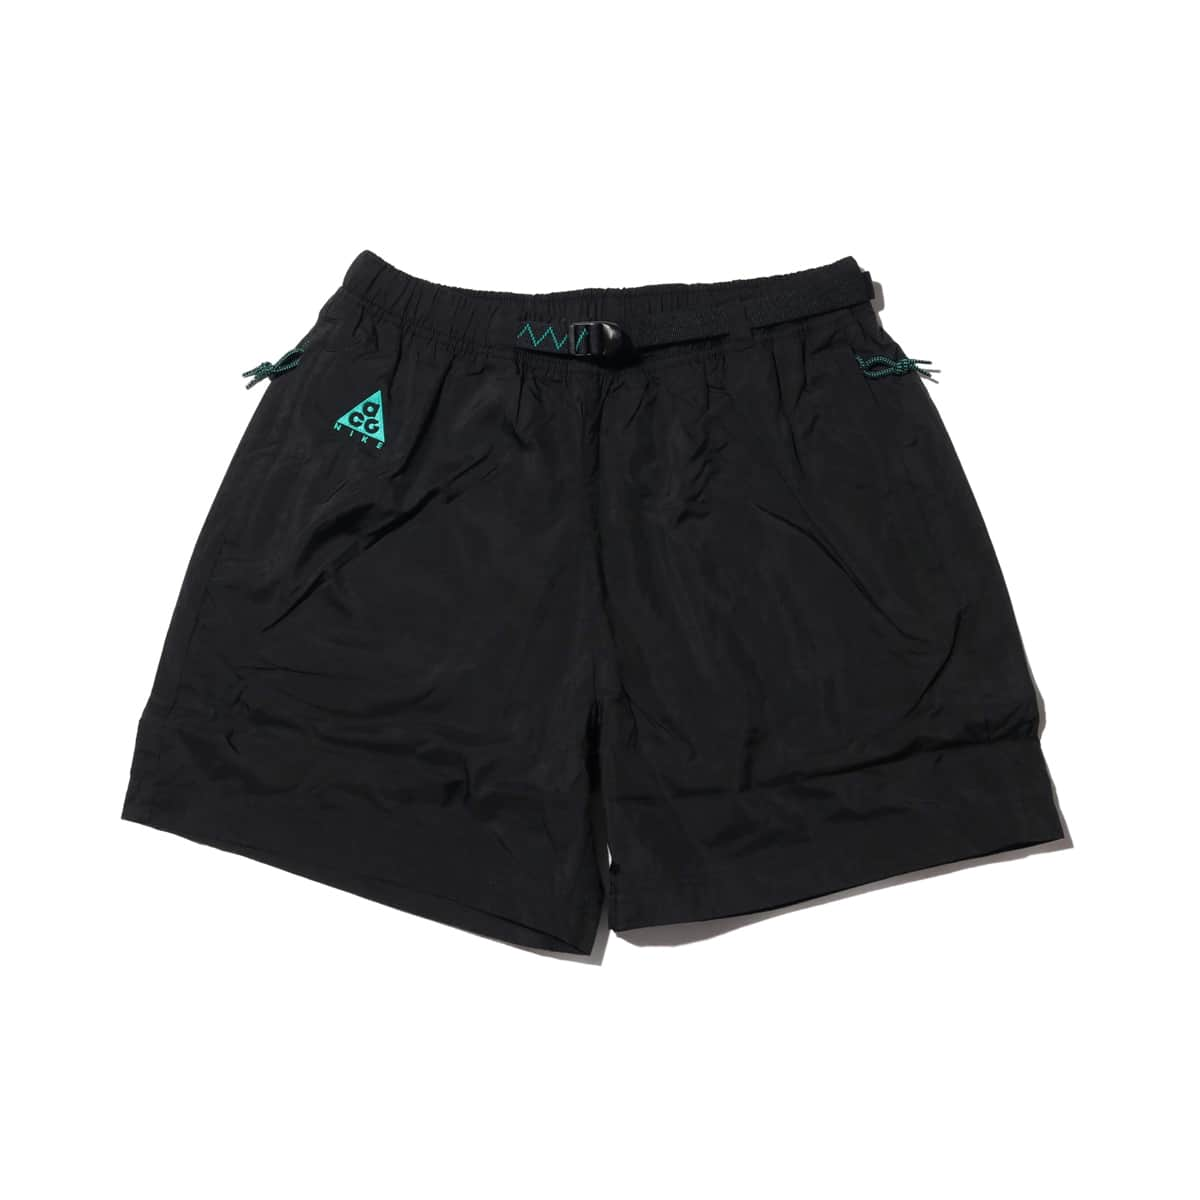 NIKE AS M ACG WOVEN SHORT BLACK 20SP-S_photo_large